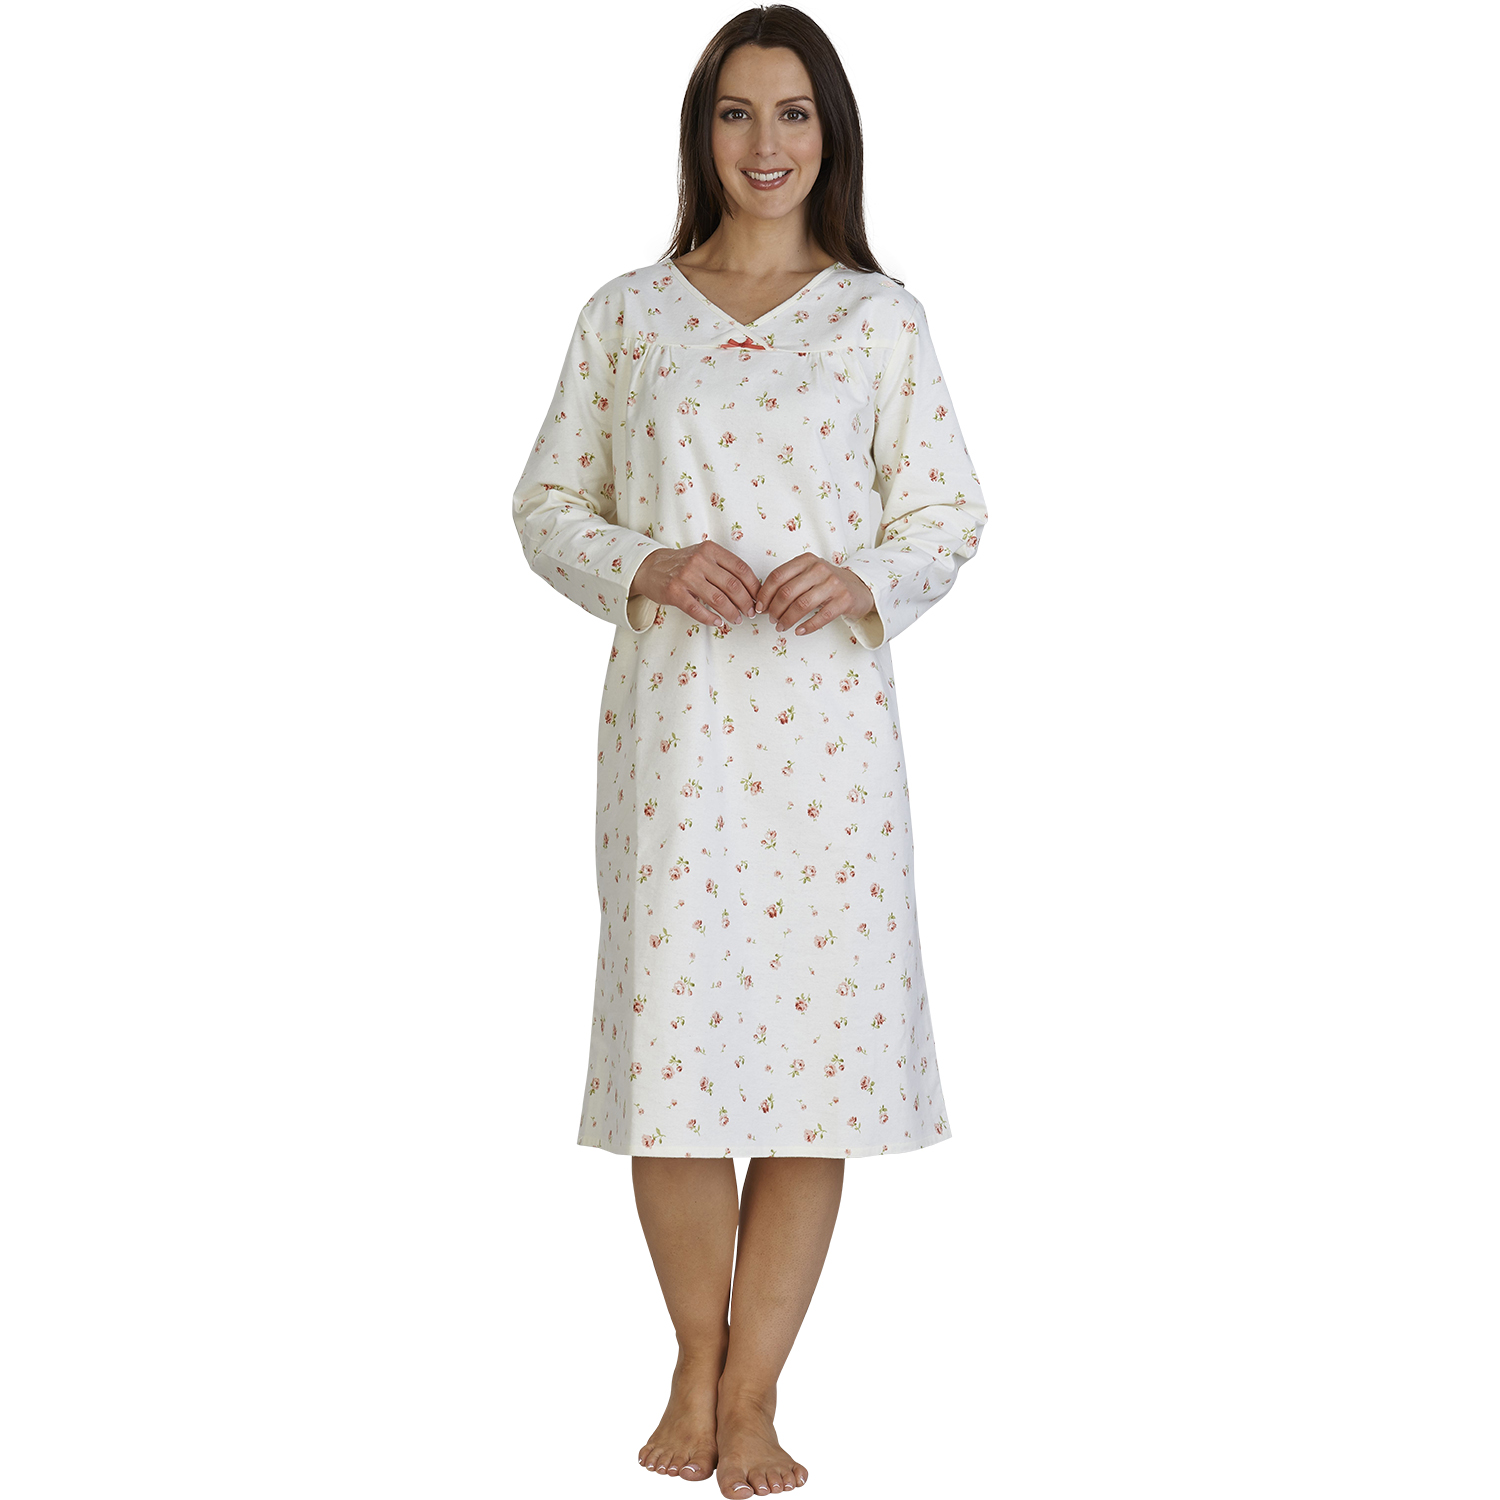 Buy Nightdresses & shirts from the Womens department at Debenhams. You'll find the widest range of Nightdresses & shirts products online and delivered to your door. Shop today!